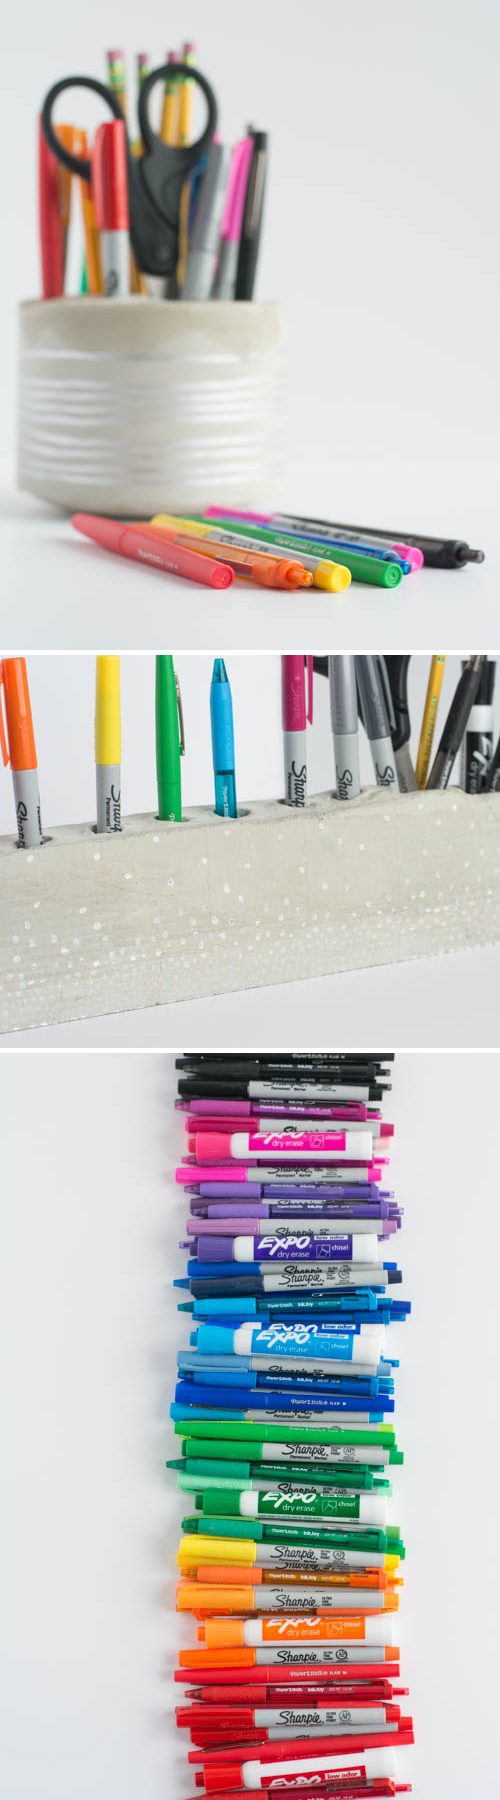 DIY: Cement Desk Organizer and Pencil Holder   |   Design Mom